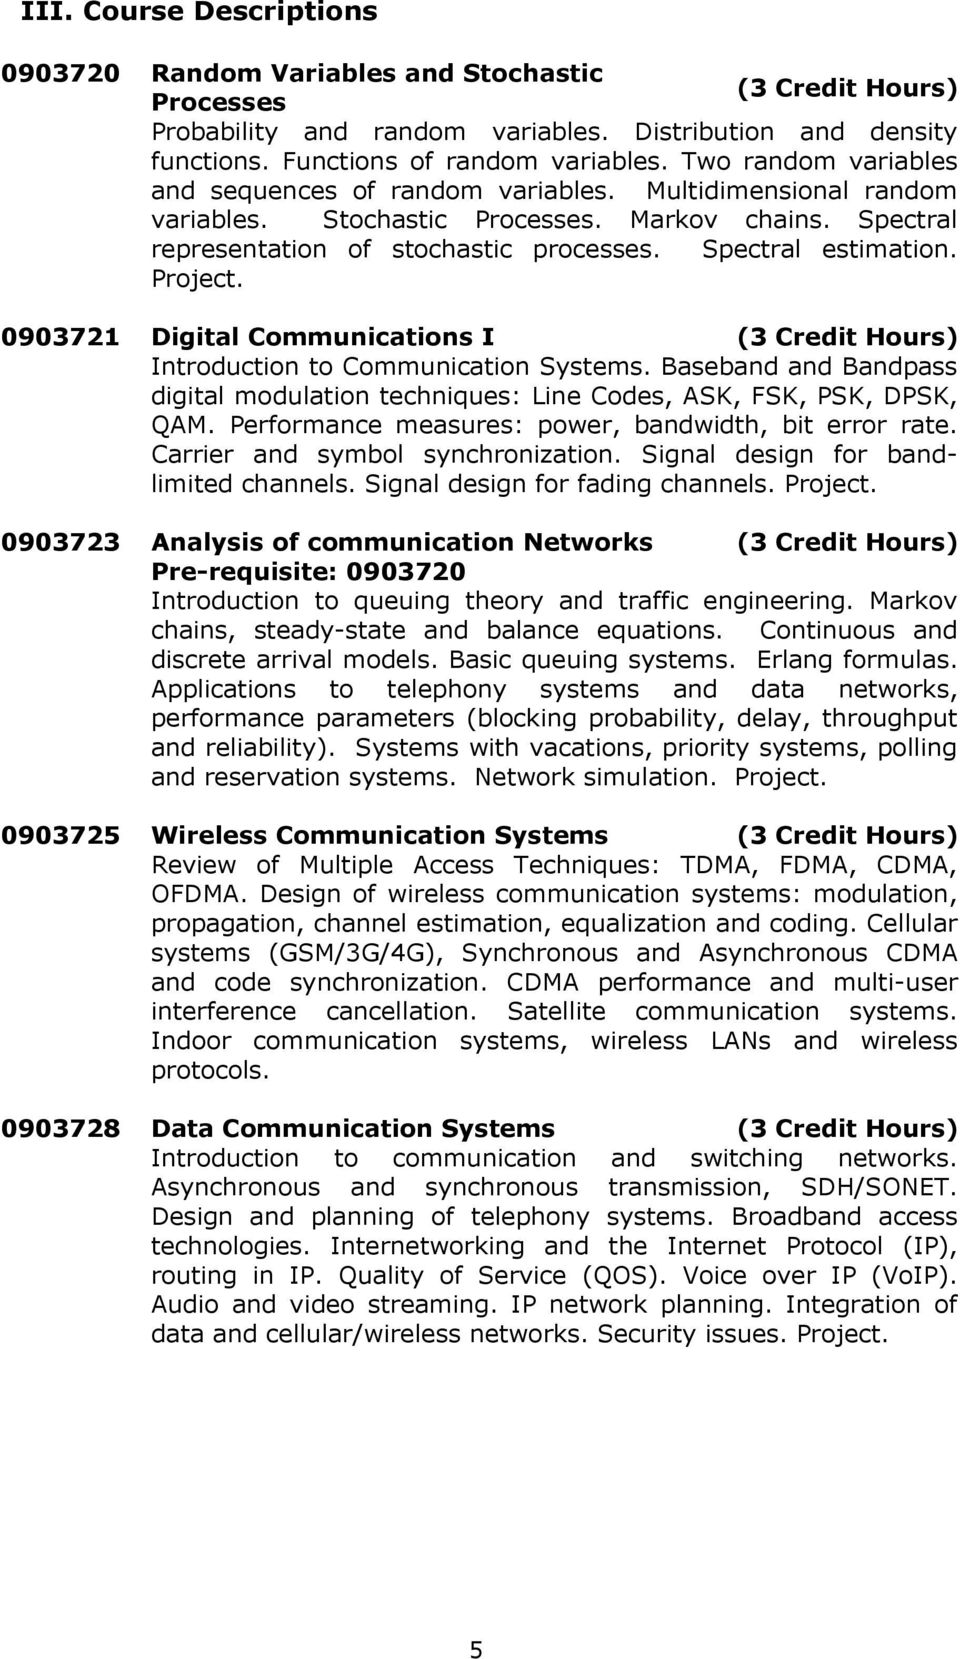 Study Plan Masters of Science in Computer Engineering and